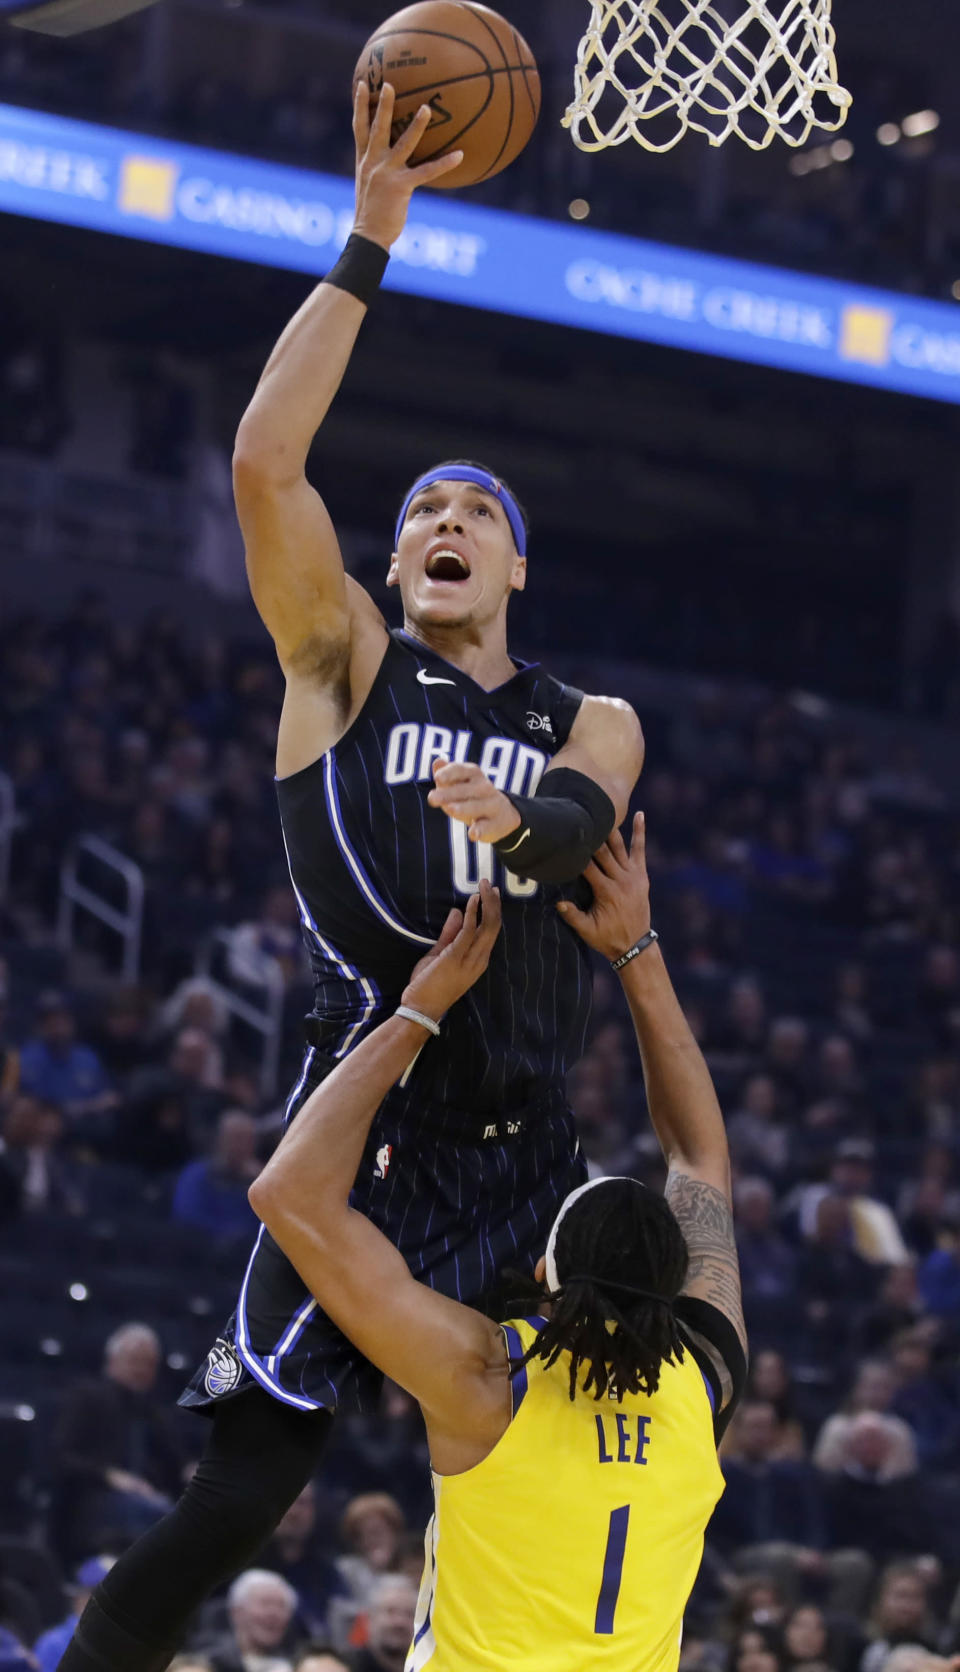 Orlando Magic's Aaron Gordon shoots over Golden State Warriors' Damion Lee (1) in the first half of an NBA basketball game Saturday, Jan. 18, 2020, in San Francisco. (AP Photo/Ben Margot)